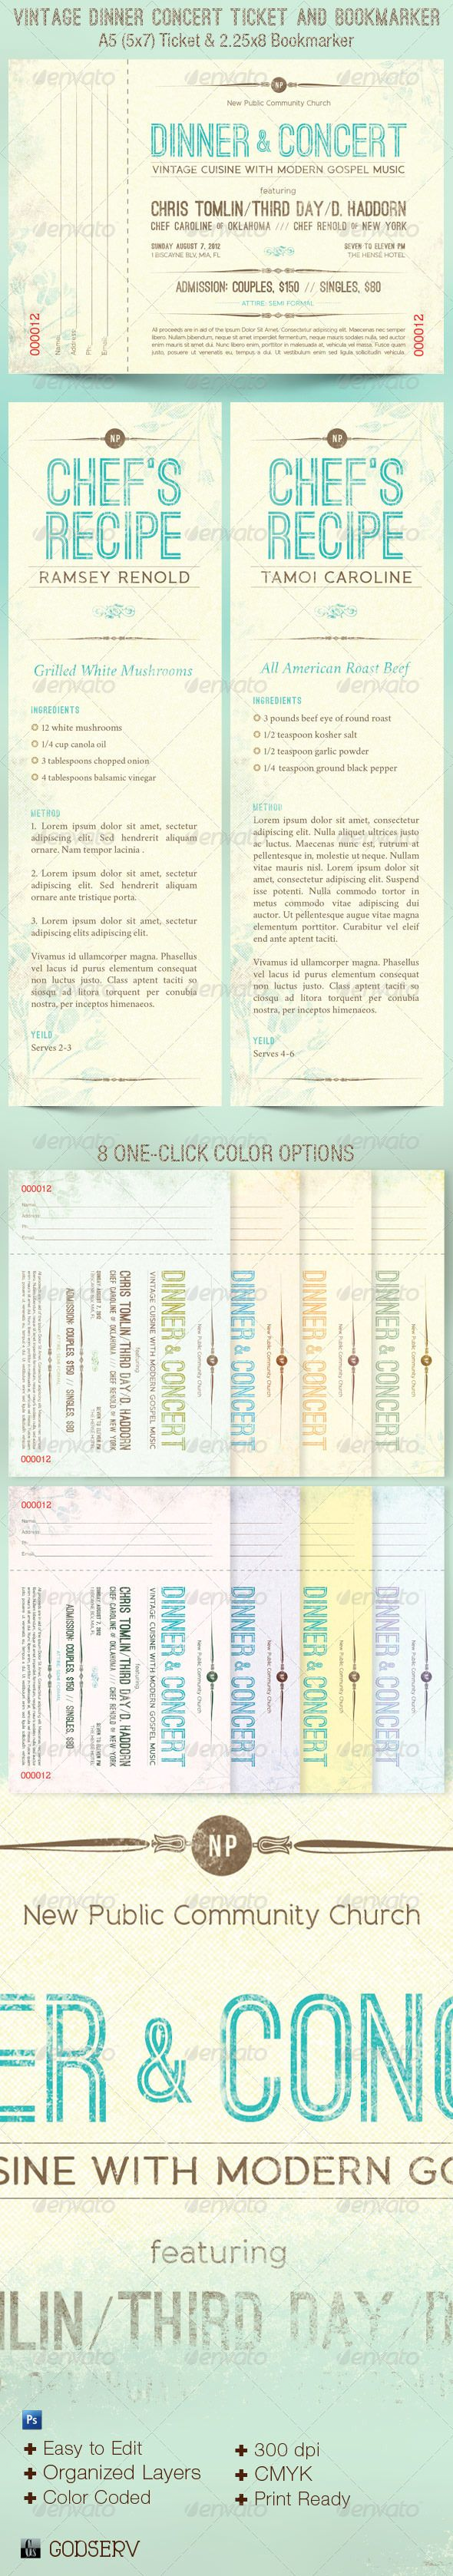 fundraiser dinner tickets template - pin by yuciey chung on tickets pinterest celebration